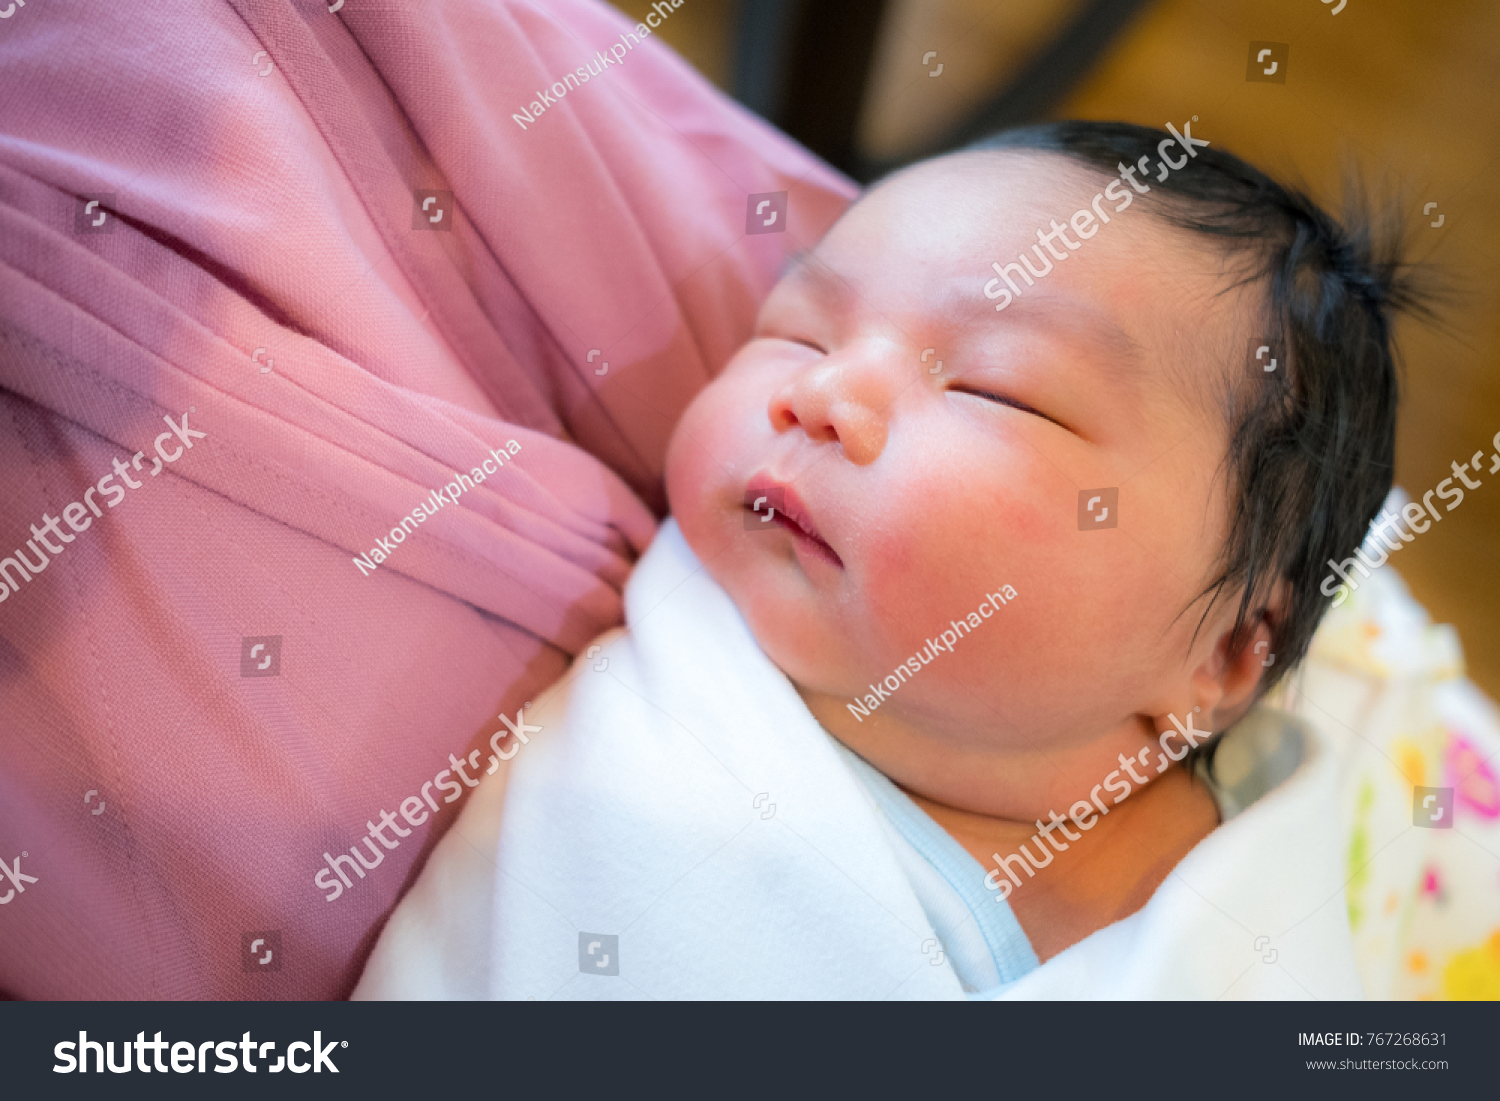 Mother Embraced Her Baby Warmly Stock Photo (Edit Now) 767268631 ... 1e3ab97801a95